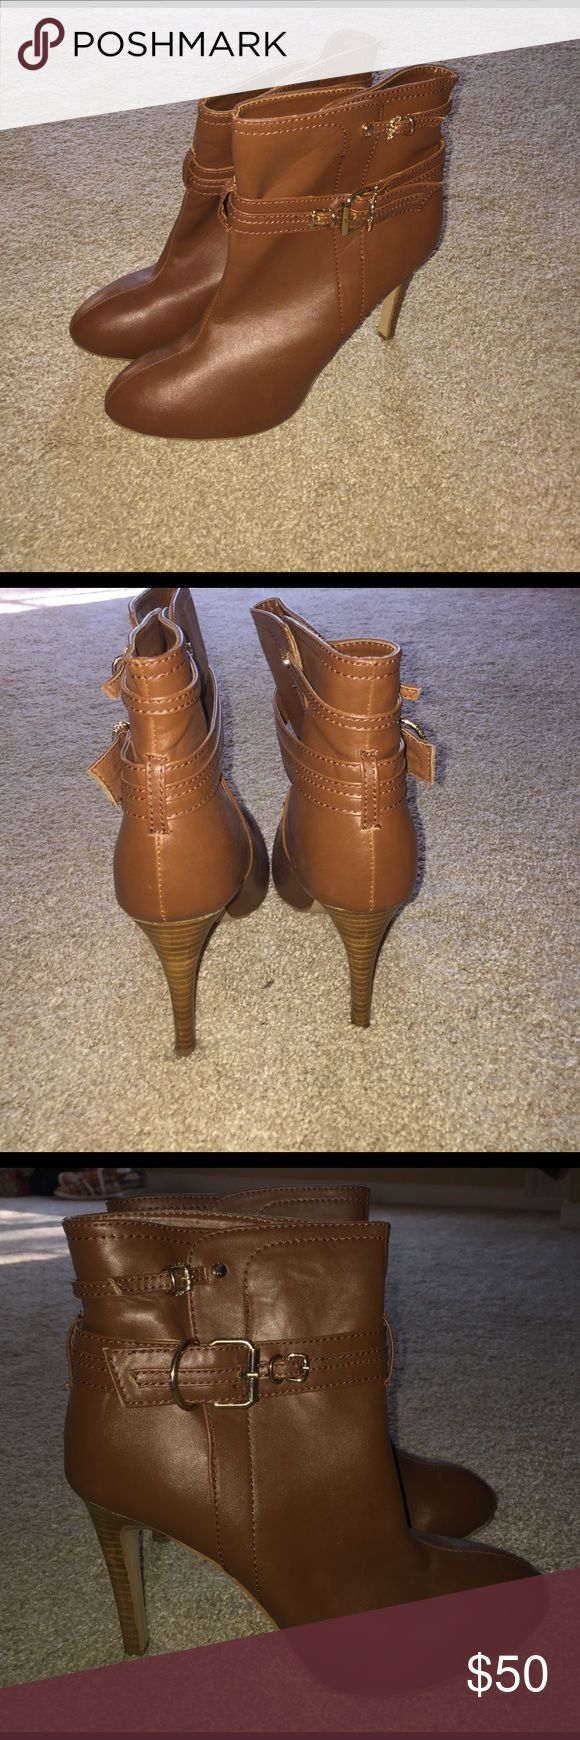 Never been worn super stylish leather boots. Tan leather boots that have never been worn. Gold buckle on the sides. Size 10 but fit very narrow. My feet were too wide for them. Colin Stuart Shoes Ankle Boots & Booties